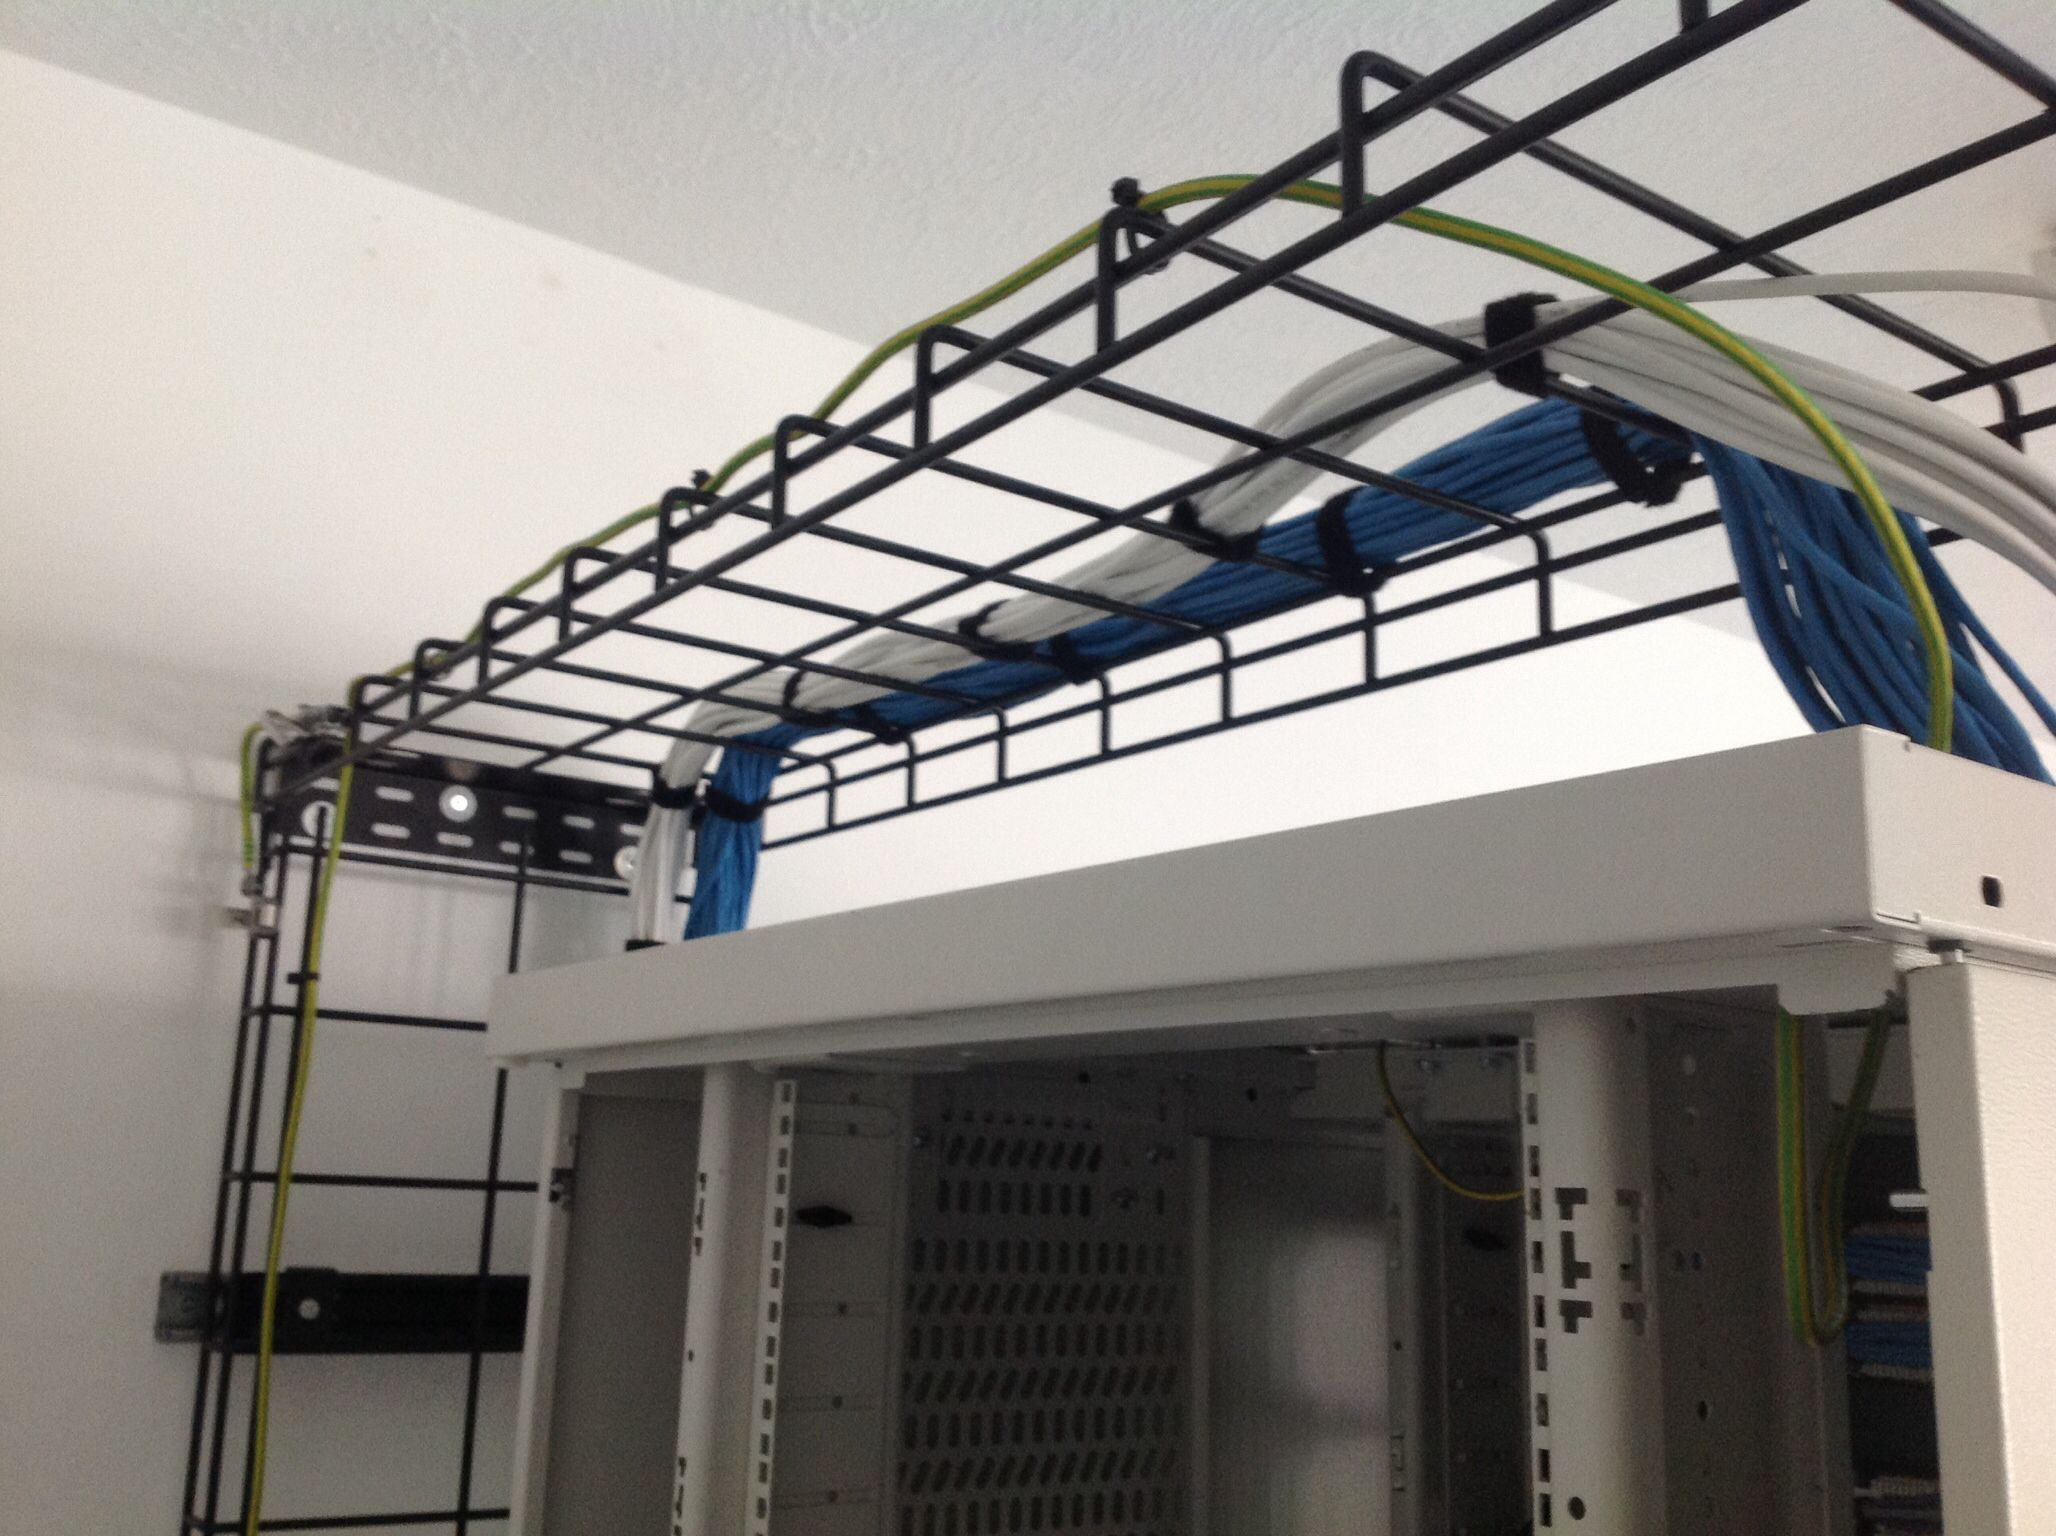 Panduit Wyr Grid Overhead Cable Management Used For Top Entry Cable Routing Into A Dataracks Eco 303 Cabinet Structured Cabling Server Room Cable Management